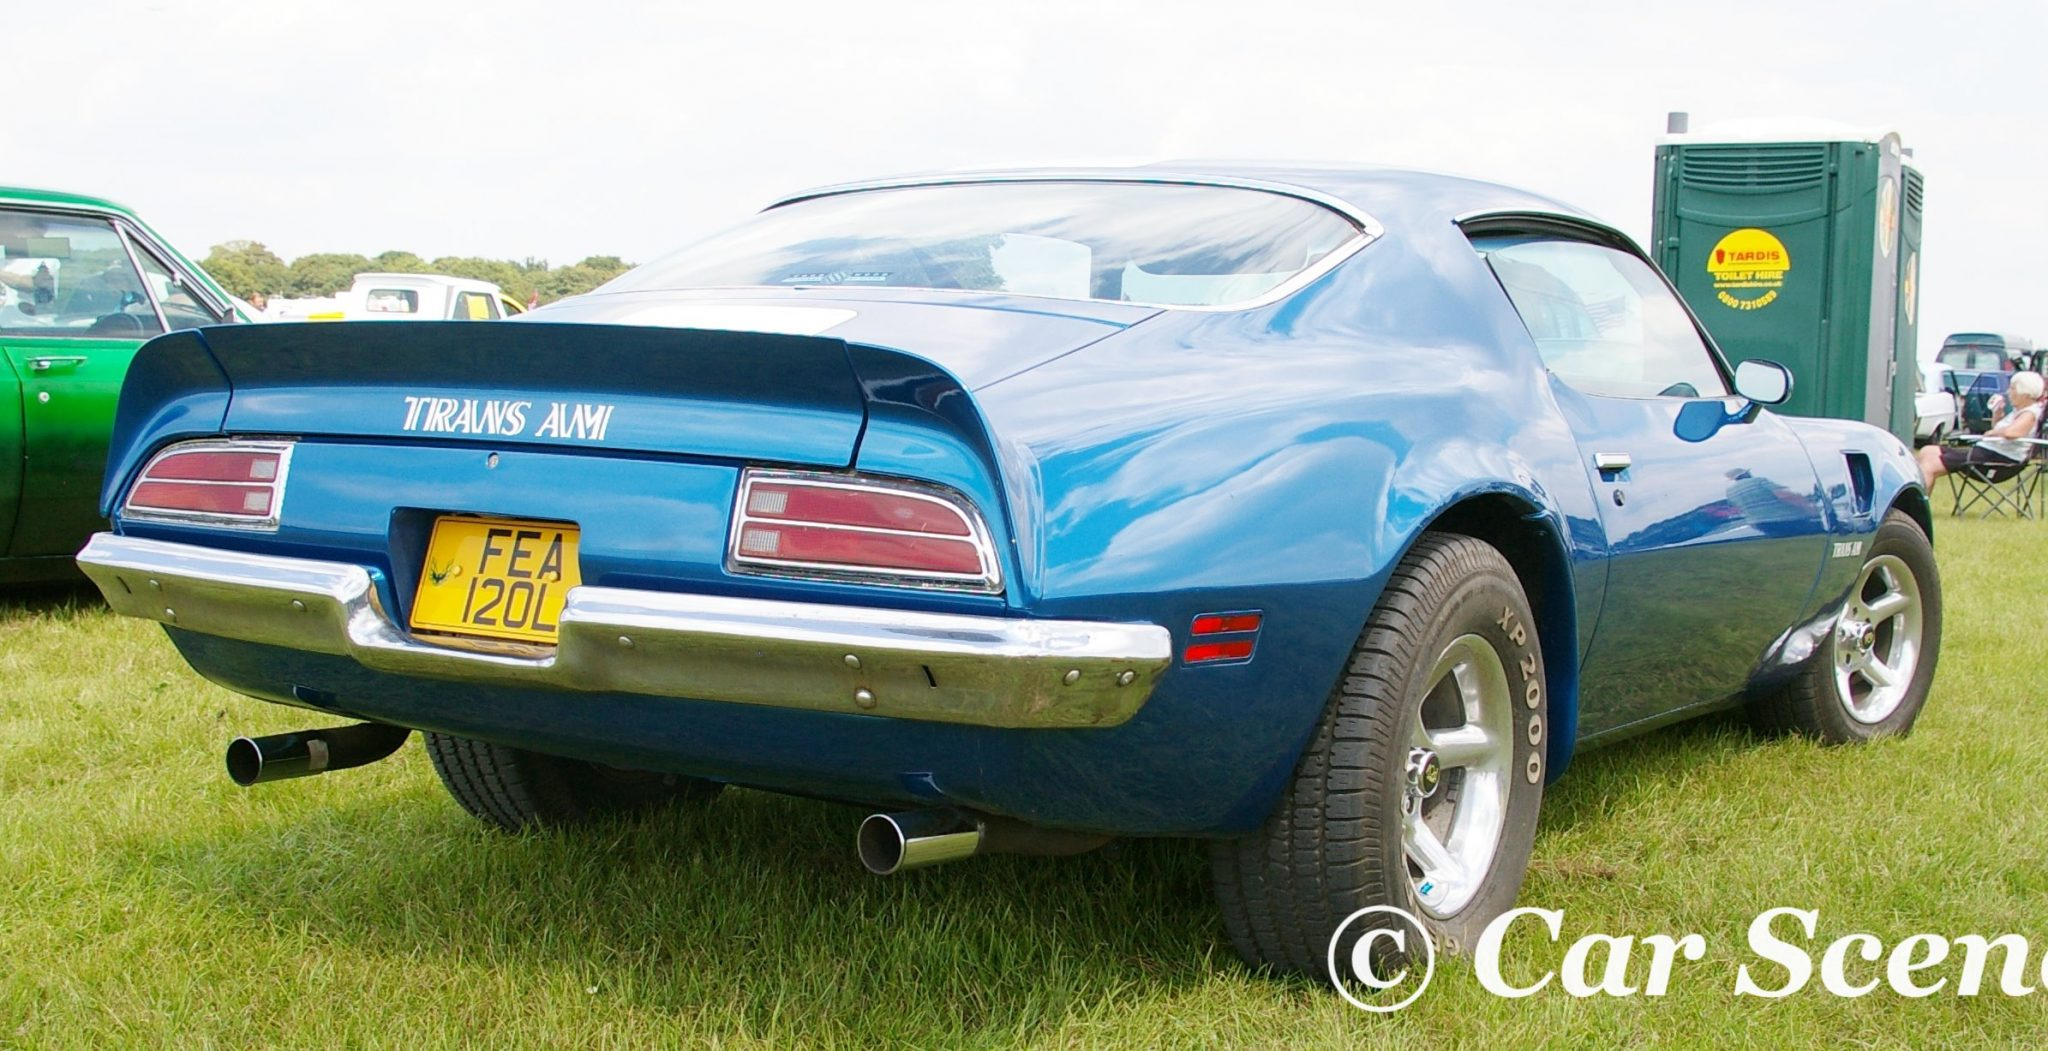 1973 Pontiac Firebird Coupe Trans Am rear three quarters view